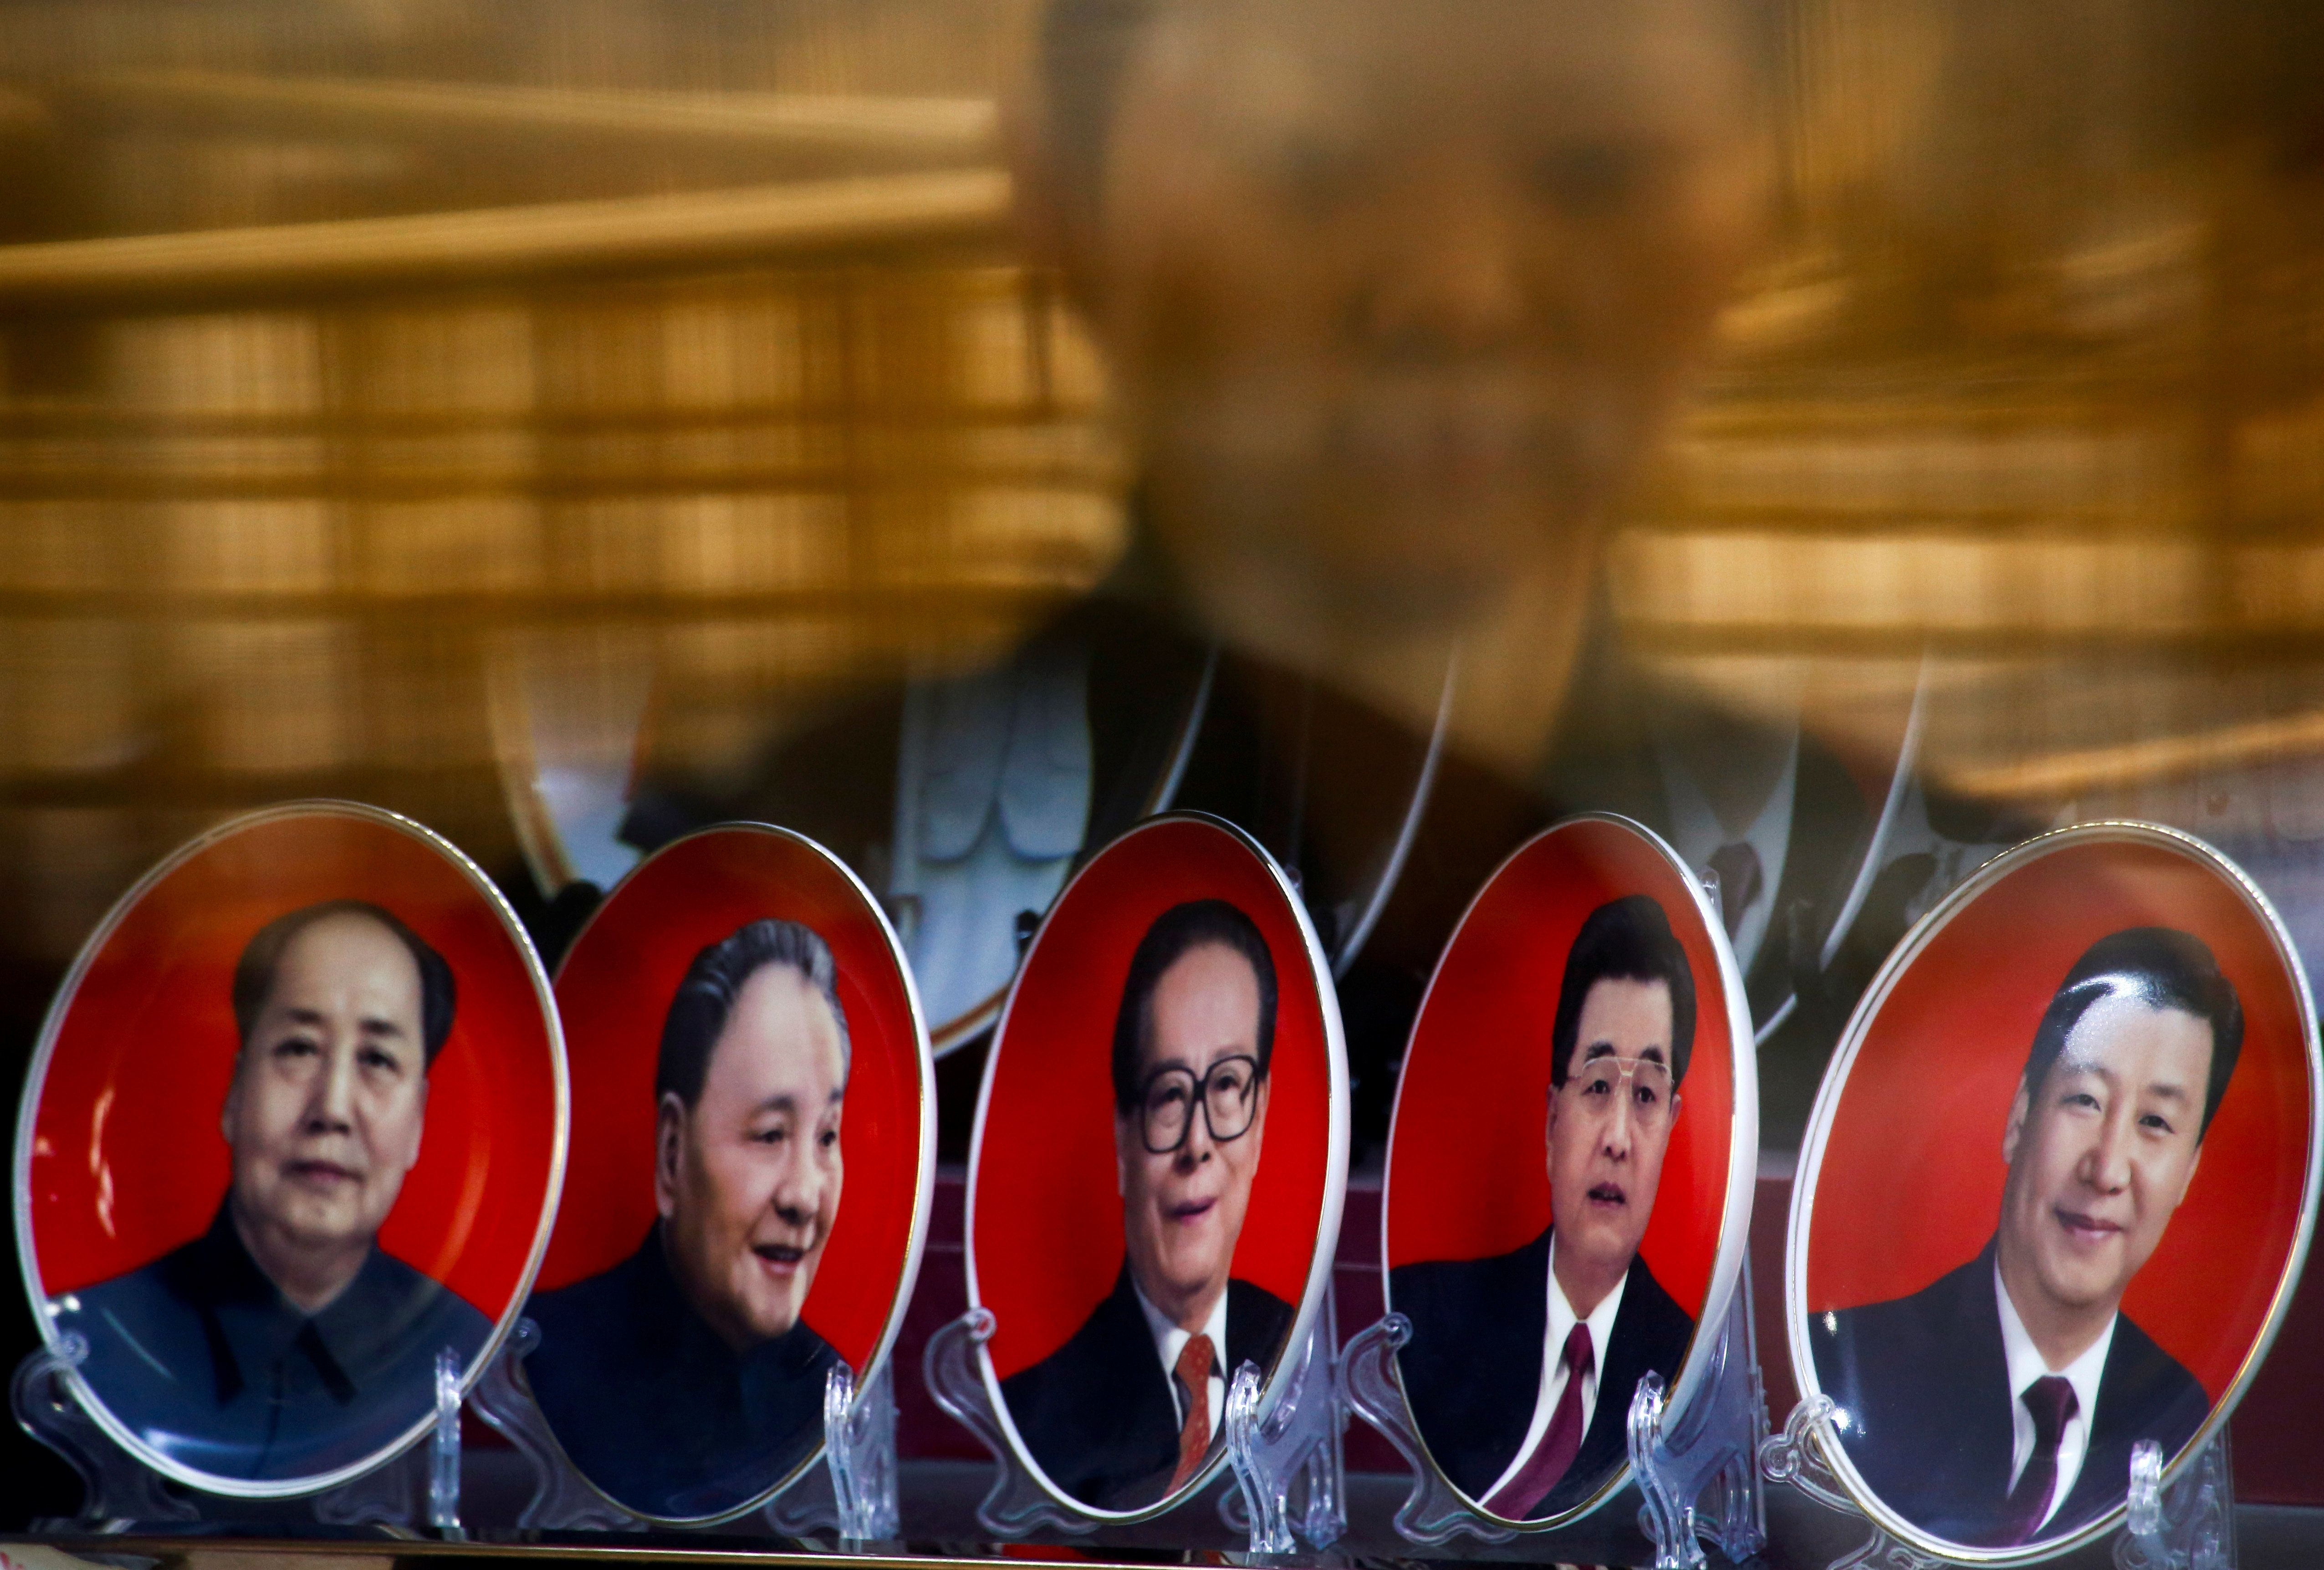 A woman is reflected in a shop window as she looks at souvenir plates with portraits of former Chinese leaders Mao Zedong, Deng Xiaoping, Jiang Zemin, Hu Jintao and current President Xi Jinping (L-R) on the second day of plenary sessions of the 18th Central Committee of the Communist Party of China (CPC) in Beijing, China, October 25, 2016.  REUTERS/Thomas Peter